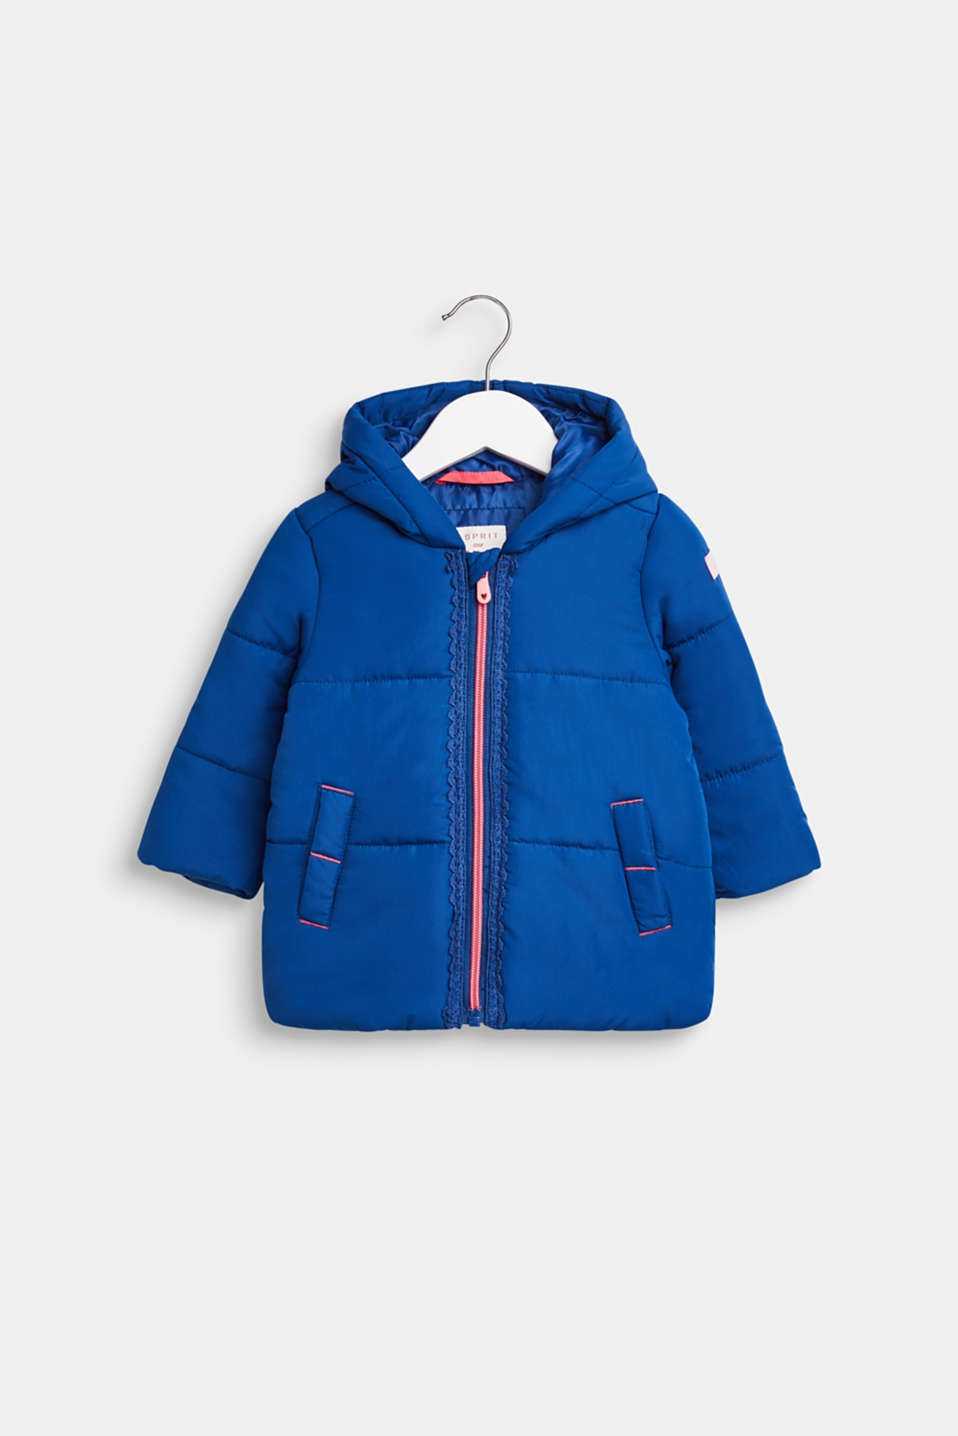 Esprit - Padded jacket with a hood and lace